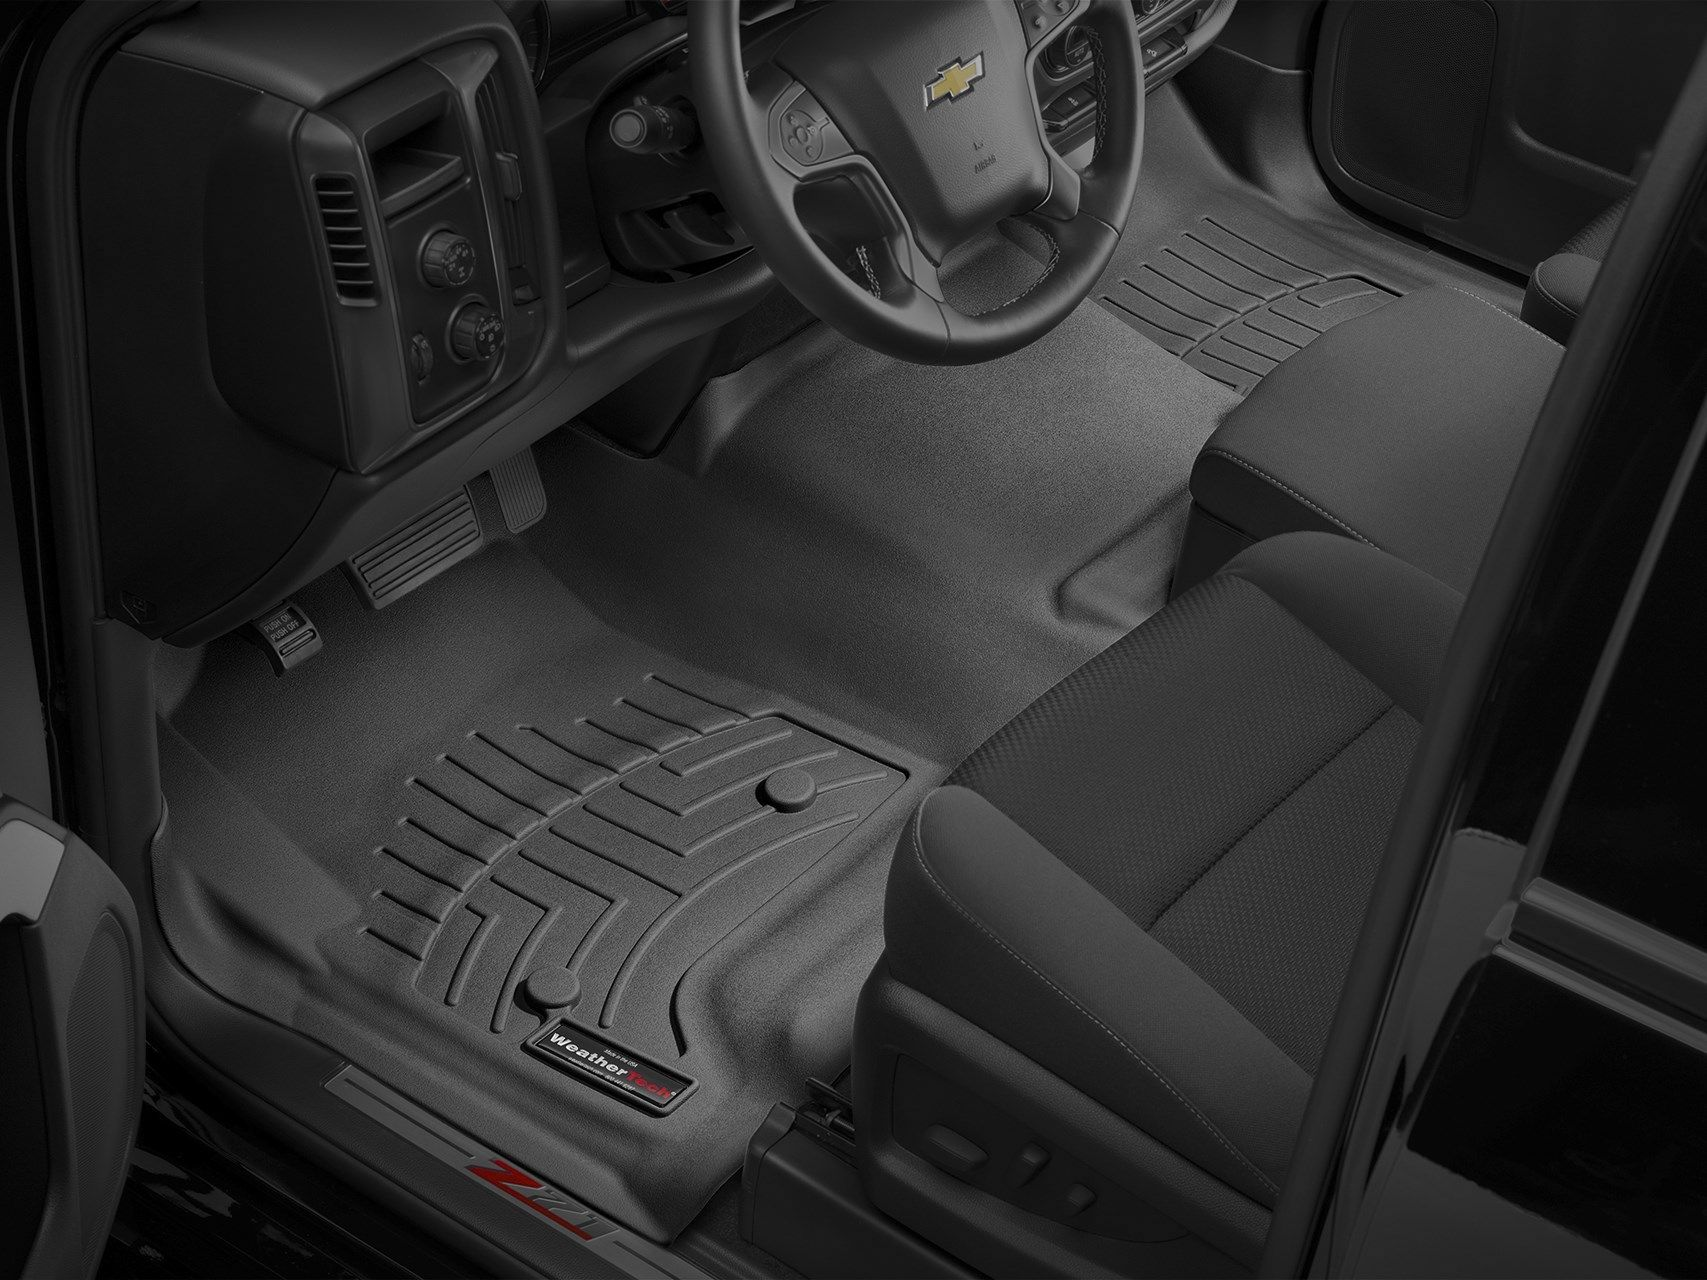 oempartno benz r mats gle model gla from floors accessories mercedes floor mcfo accessory mat id title suv trays class